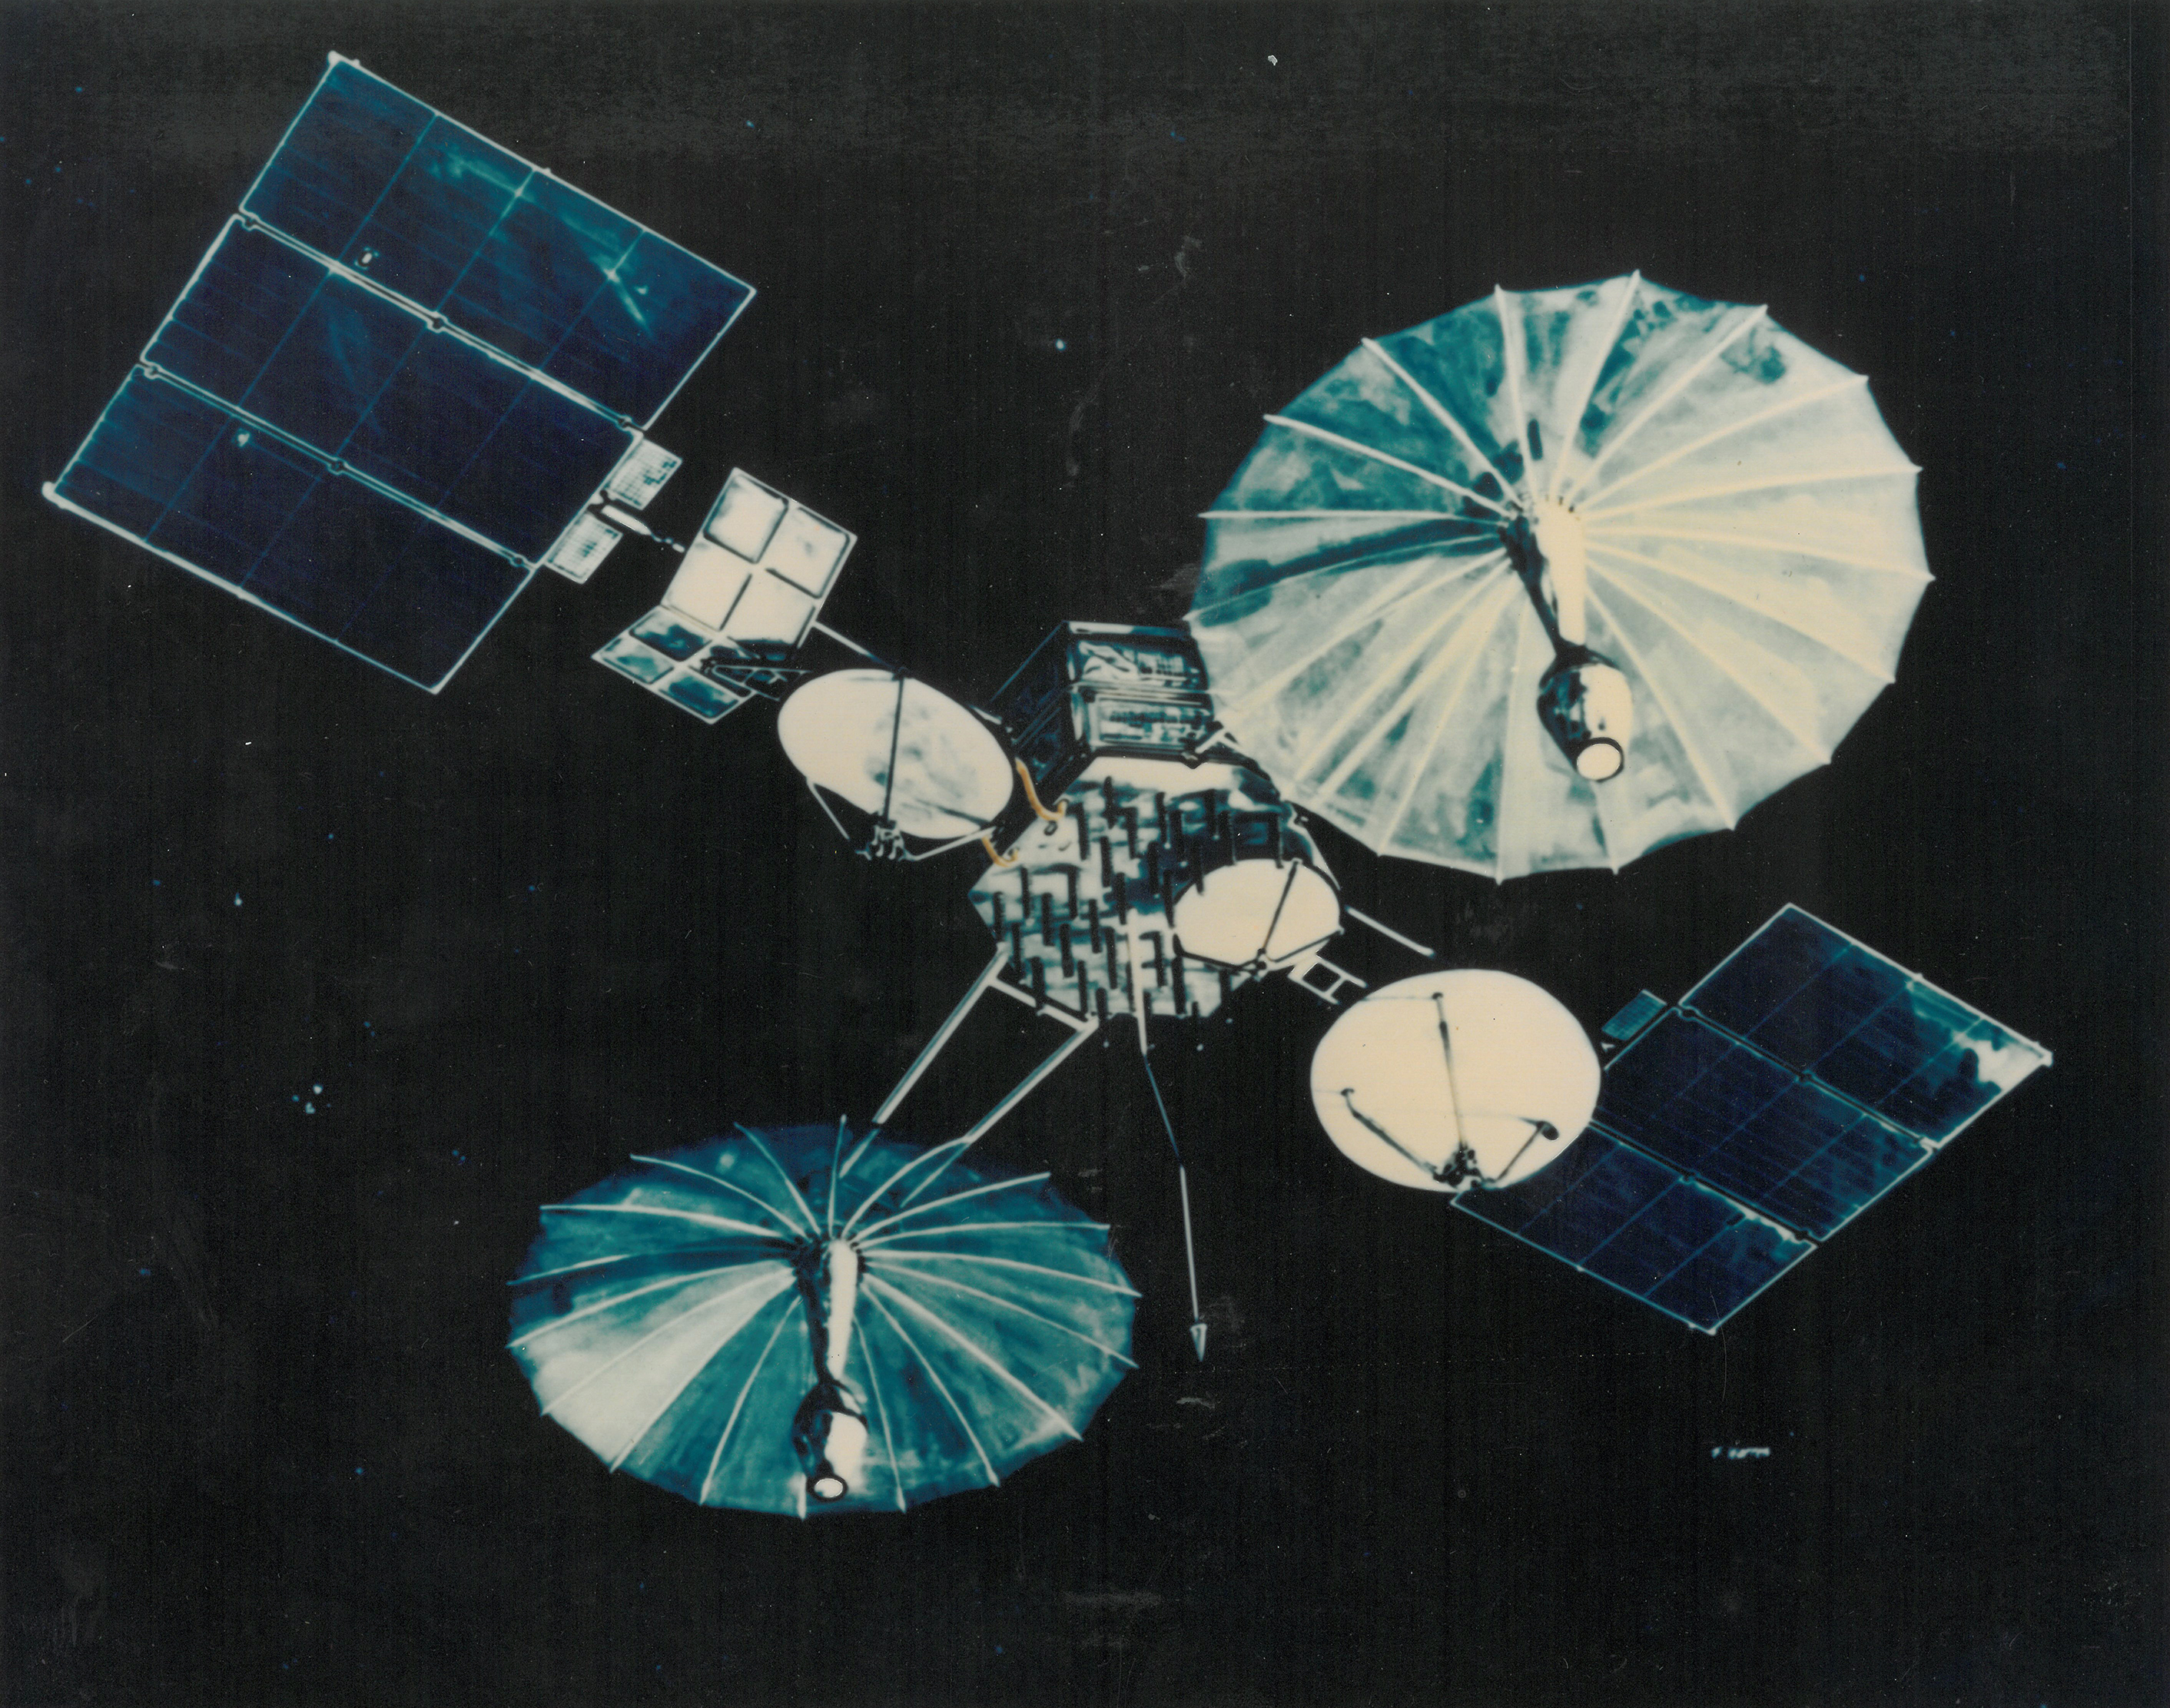 TDRSM On Track To Join A Critical Constellation Of Satellites - Space track